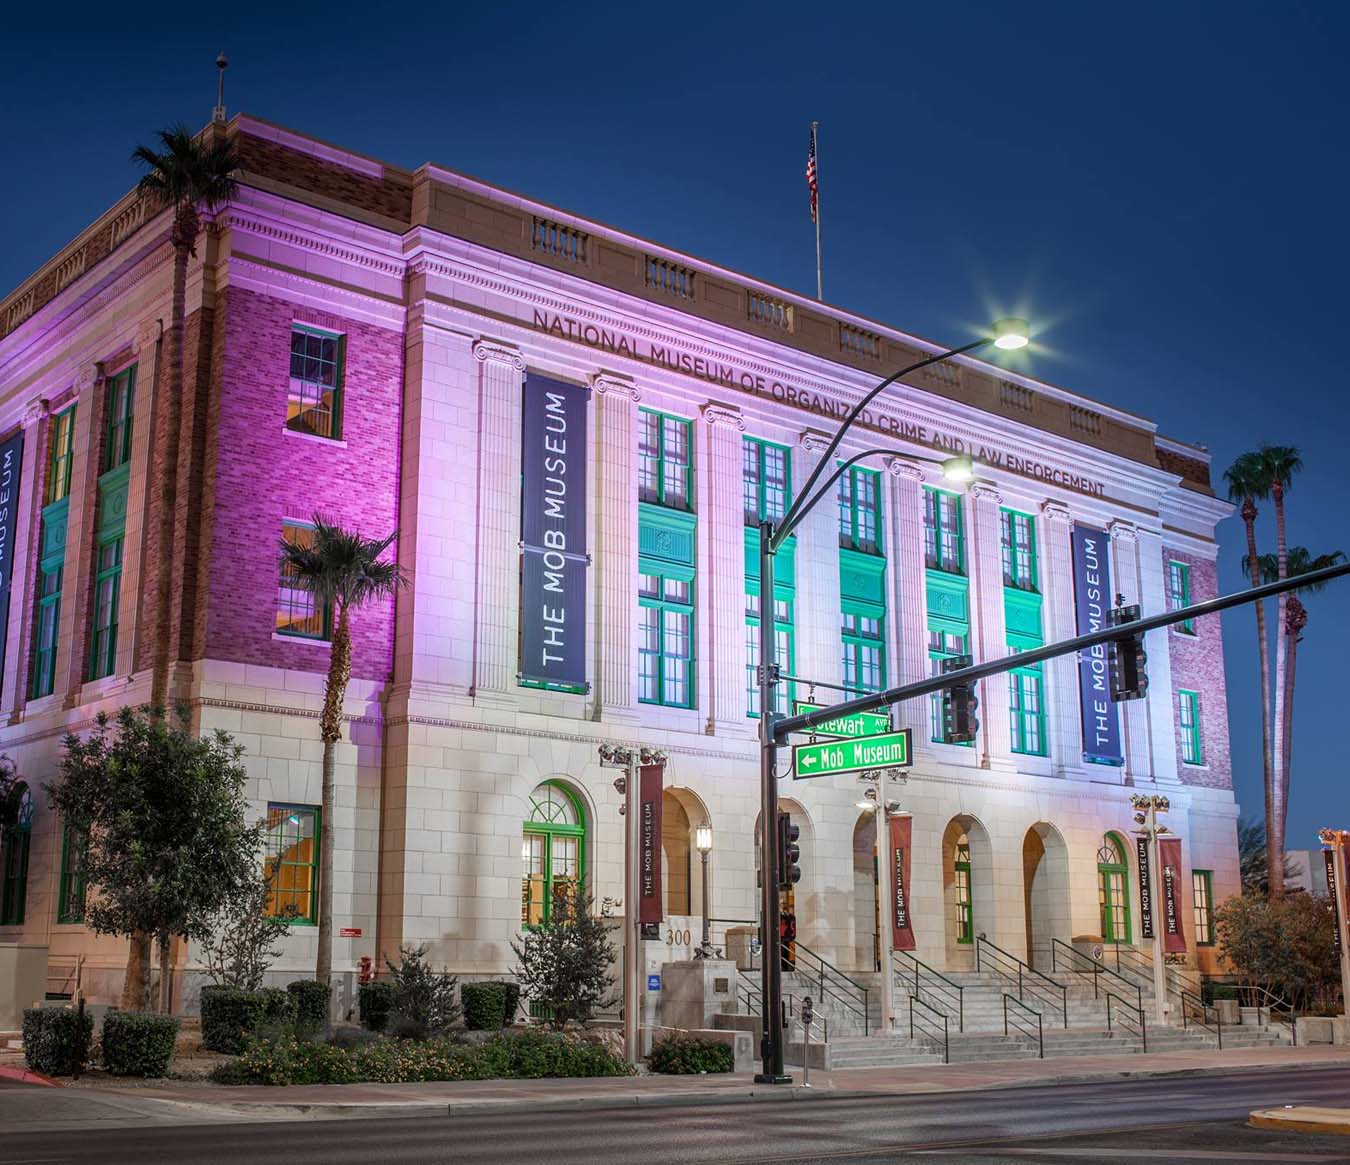 Things to Do in Las Vegas - The Mob Museum